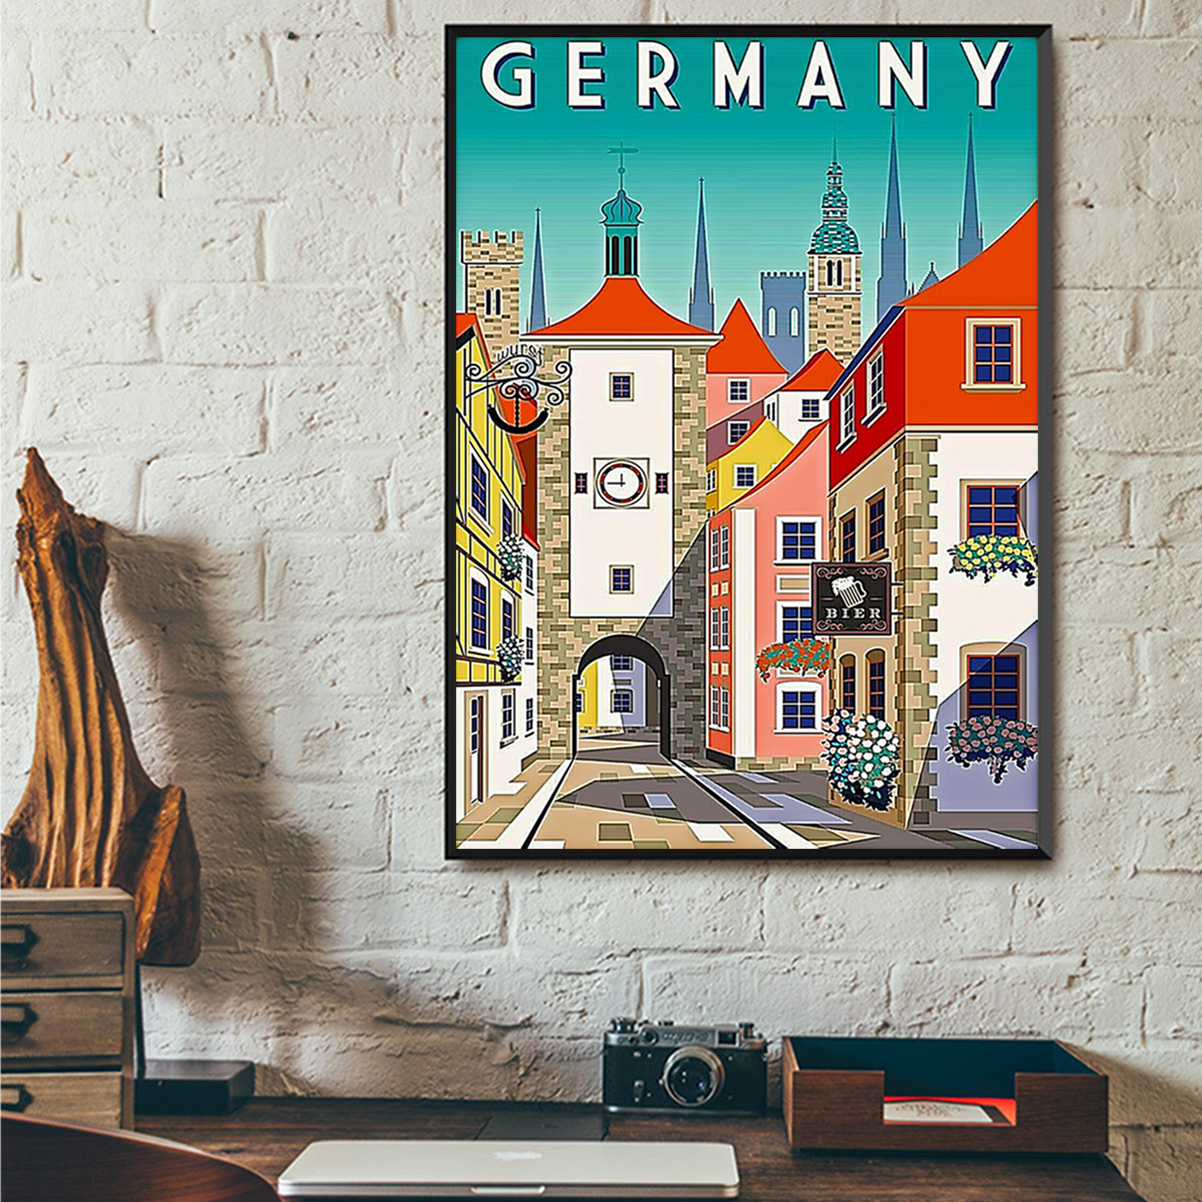 Germany poster A3